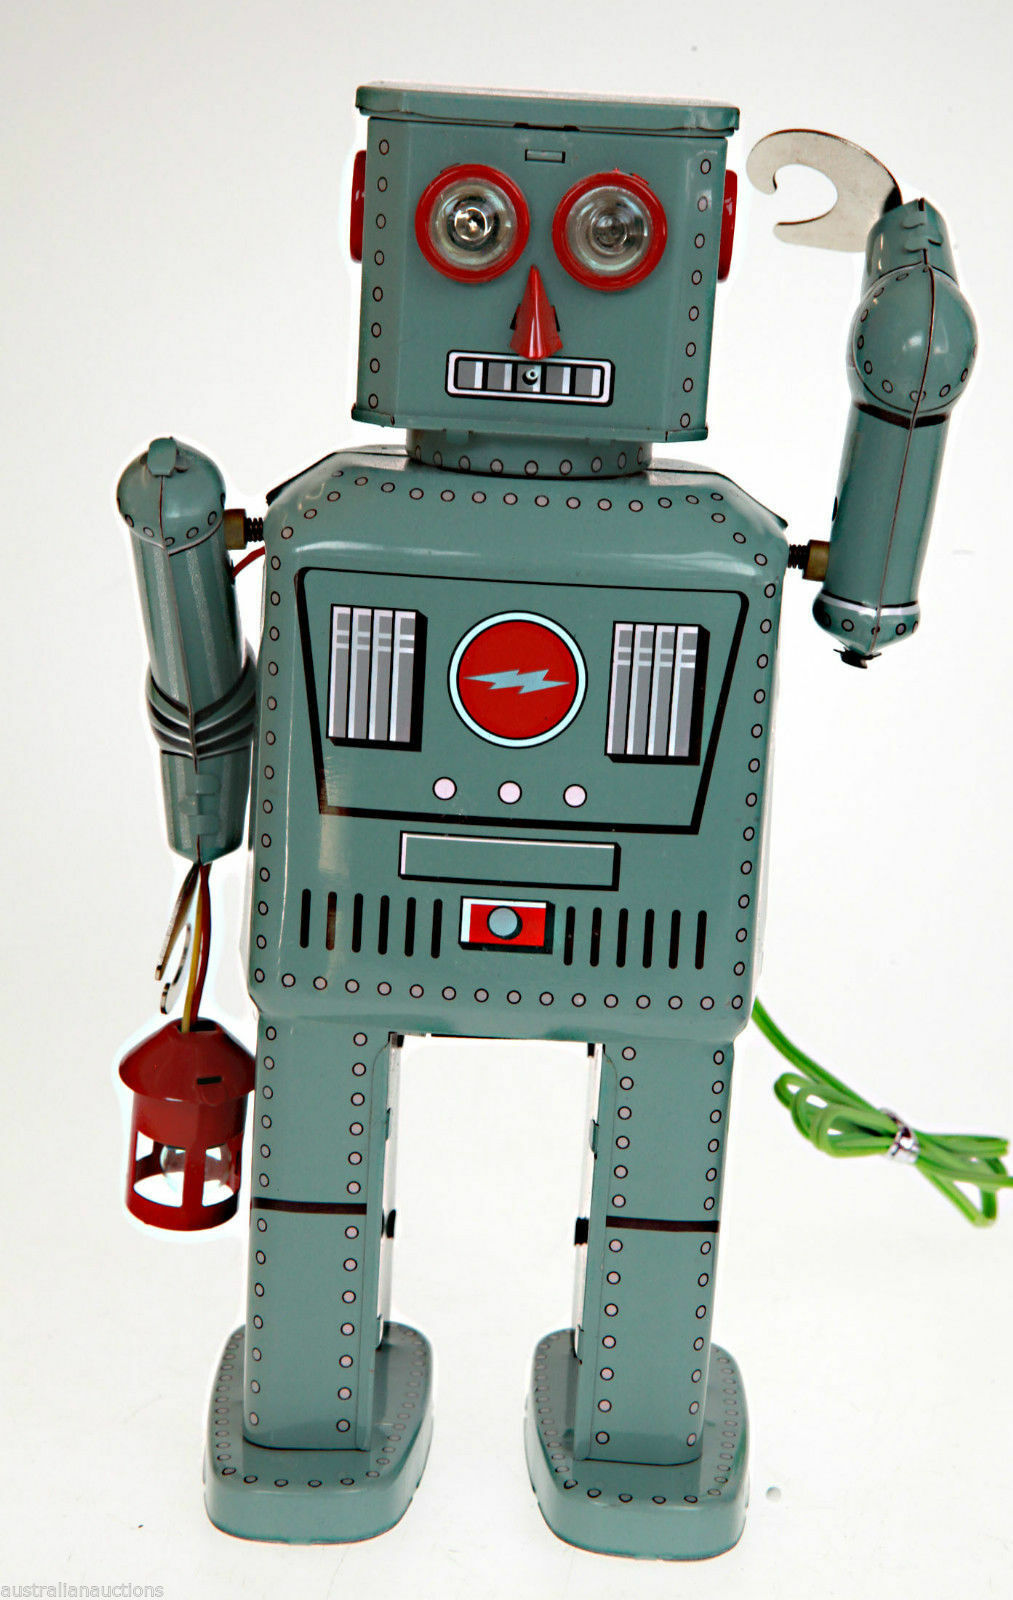 TR2050 LANTERN ROBOT TIN TOY REMOTE CONTROL BATTERY OPERATED SMOKES HARD TO GET